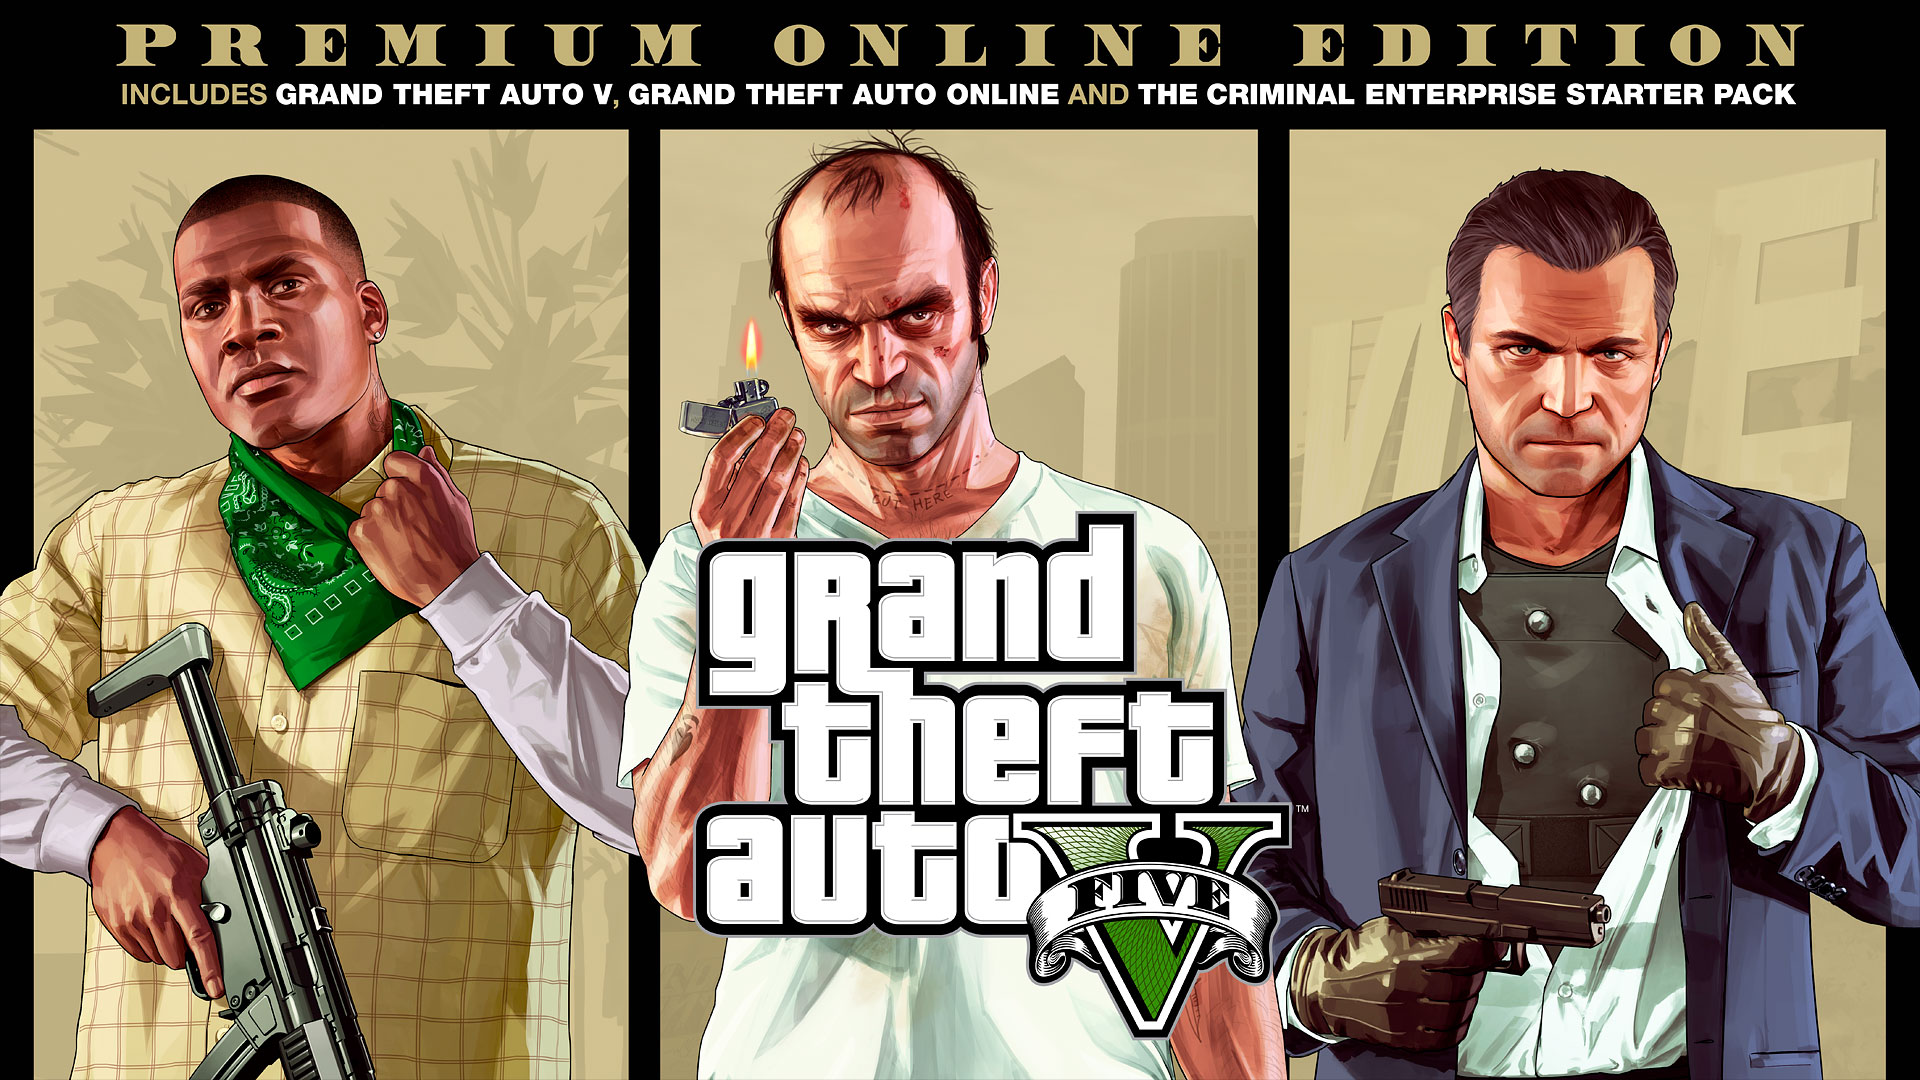 ⭐️ GRAND THEFT AUTO V GTA 5 PREMIUM EPIC GAMES MAIL ⭐️